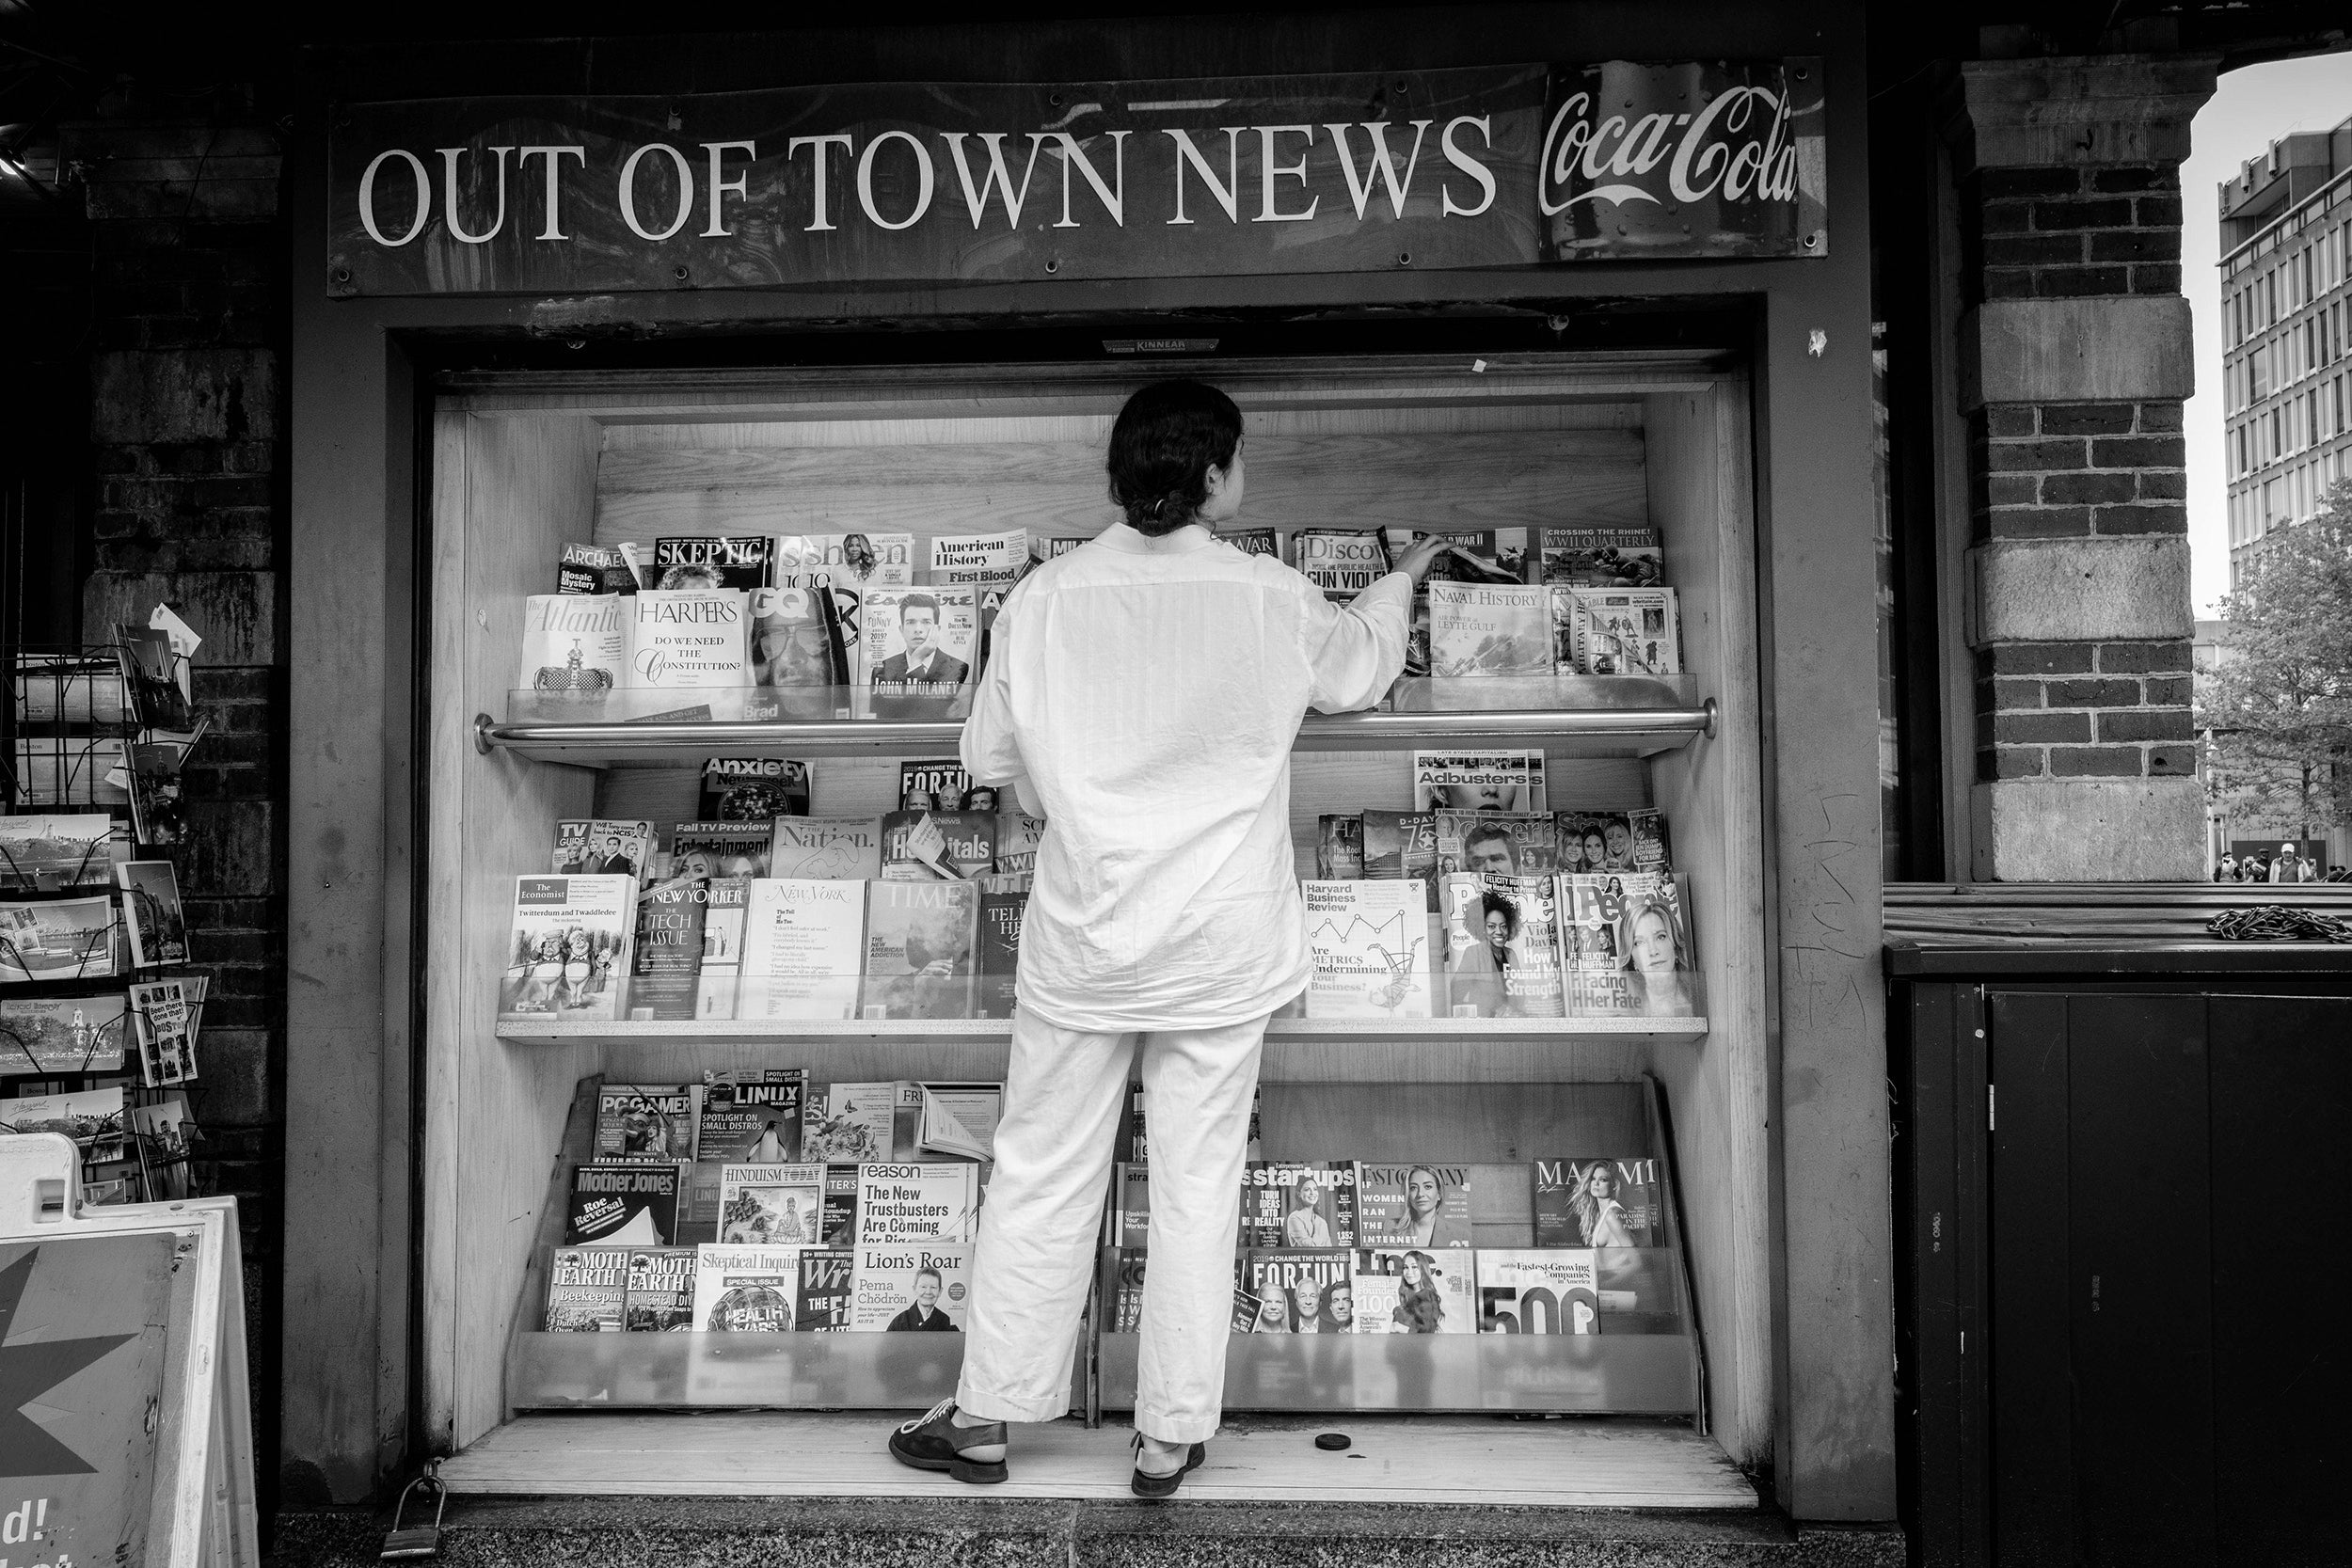 Magazine stand outside Out of Town News.